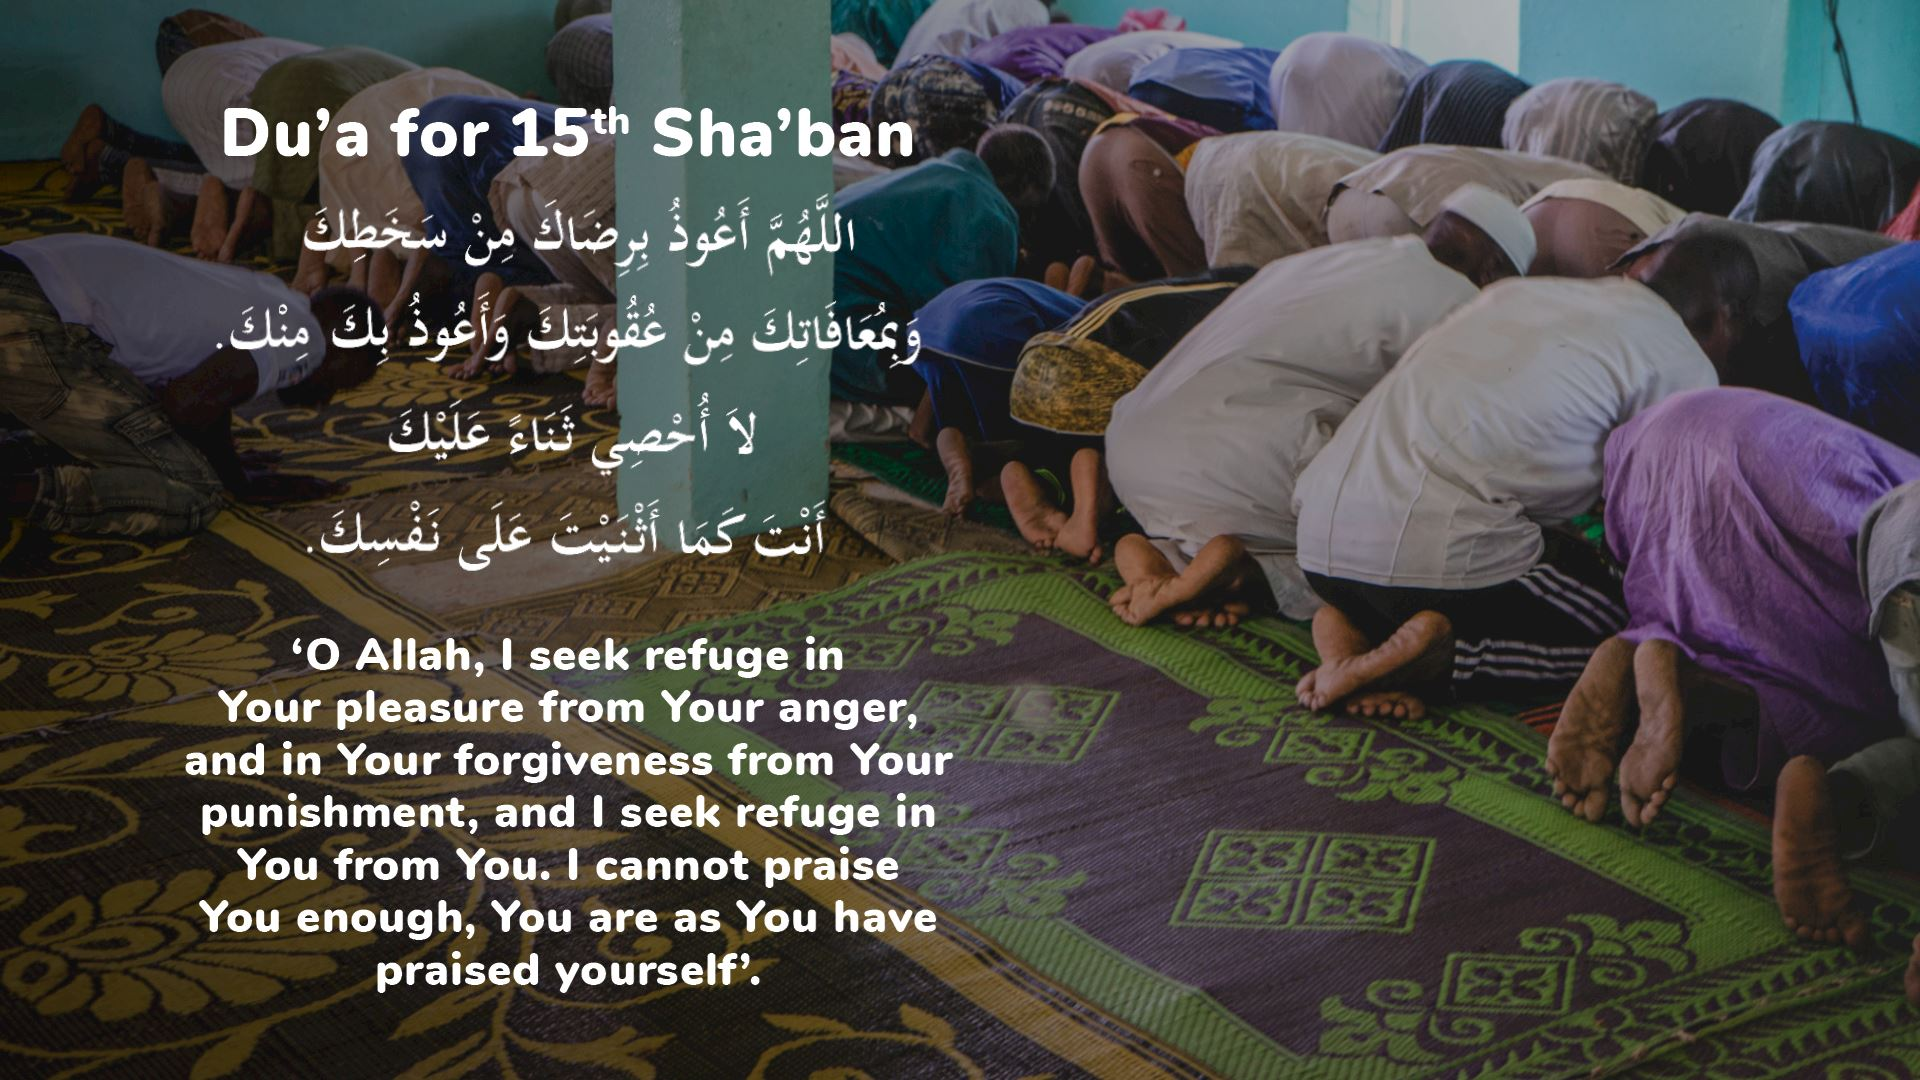 The 15th of Sha'ban - A Night for Asking Forgiveness | Muslim Hands UK